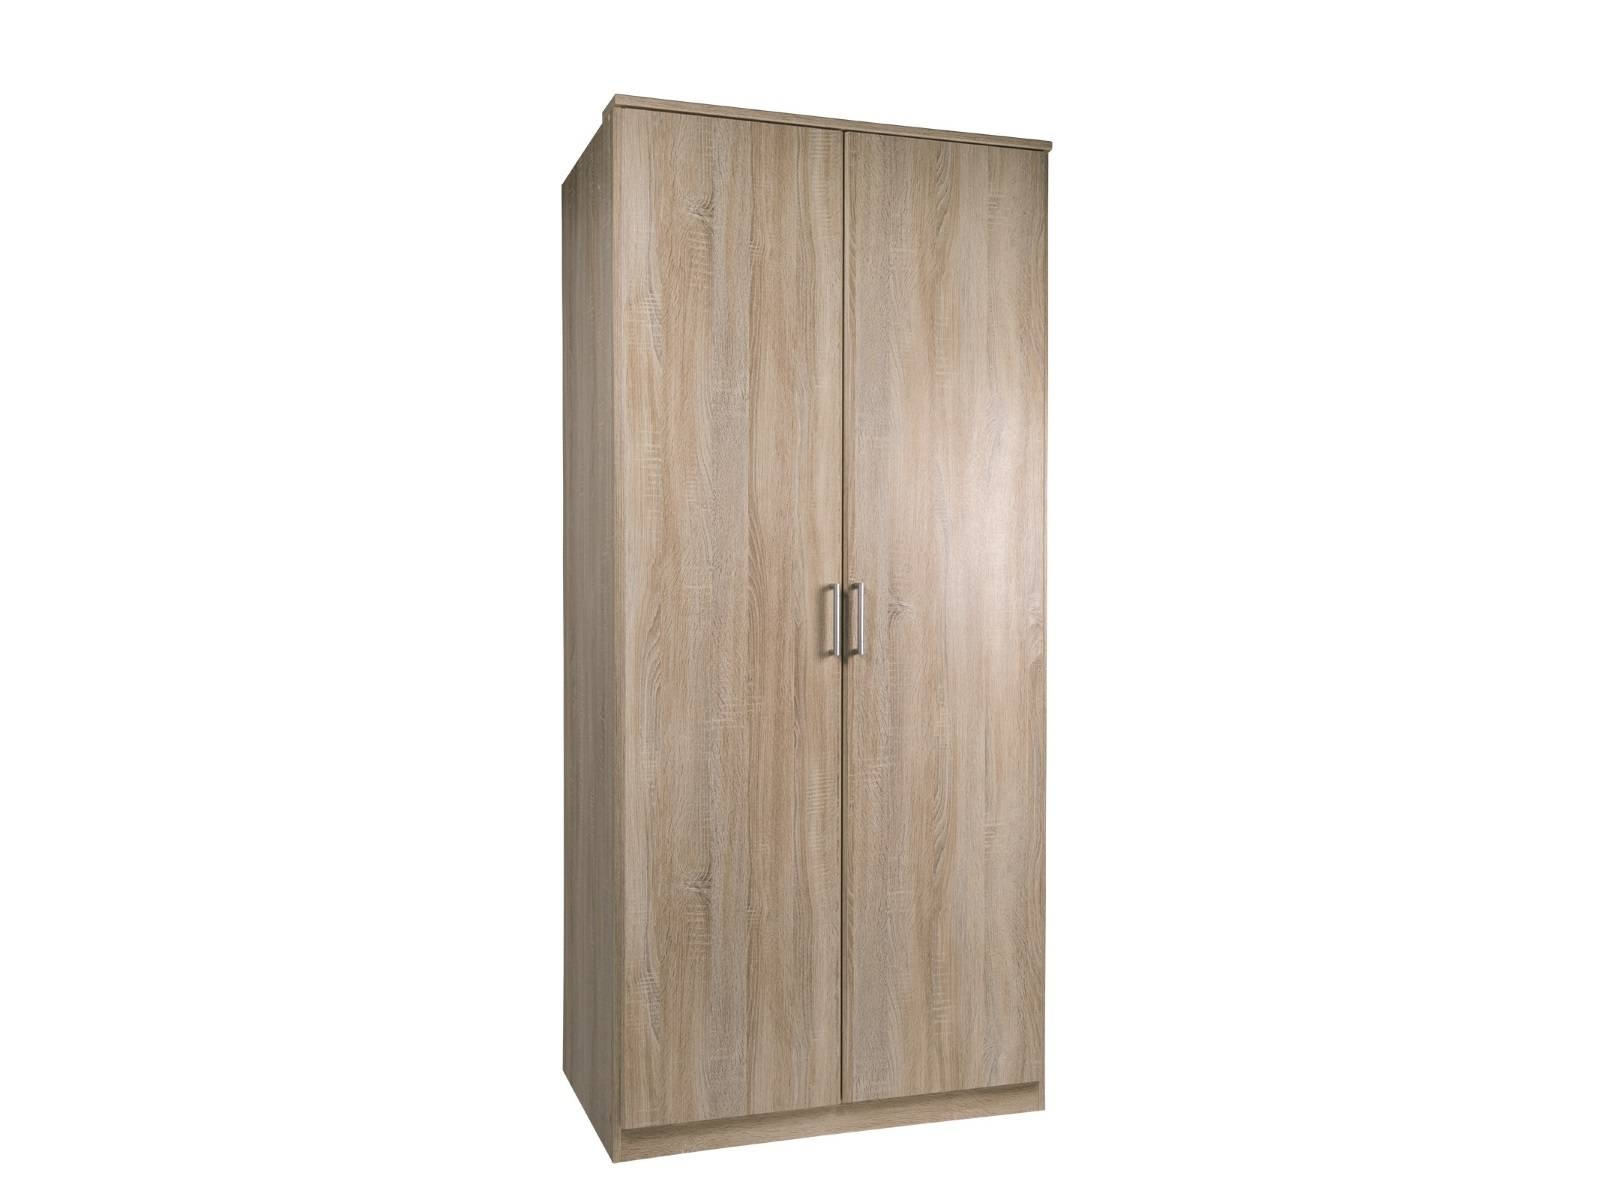 Cheap Wardrobes | Bedroom Furniture For Sale | Double Wardrobe for Wardrobes Cheap (Image 9 of 15)